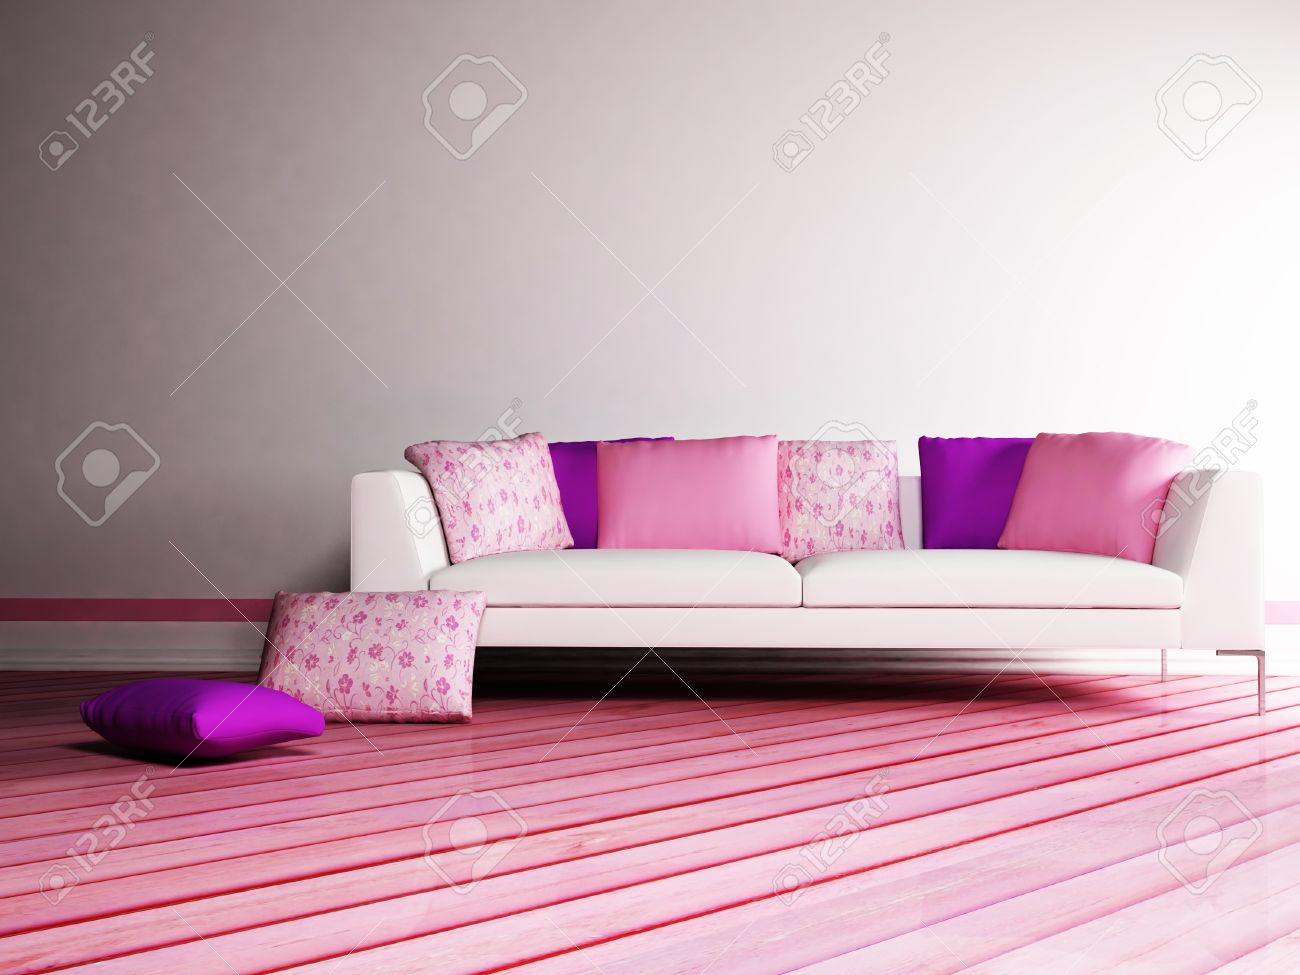 Modern  interior design of living room with a nice sofa with many pillows Stock Photo - 12975462